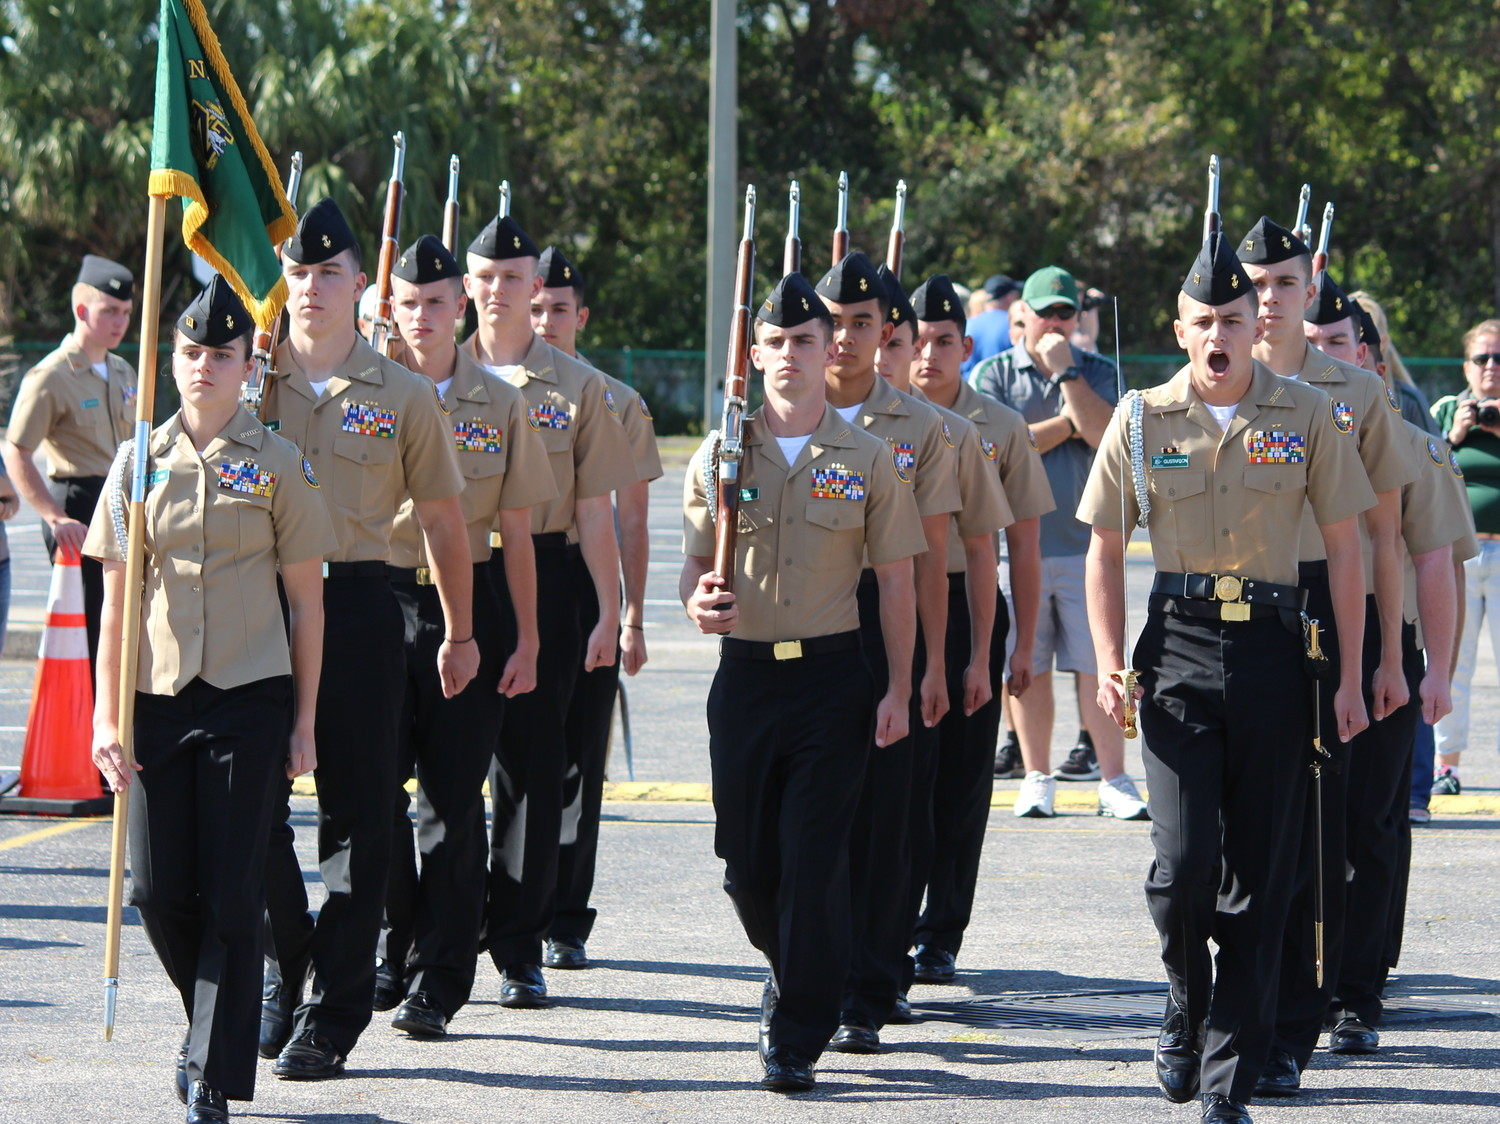 Nease NJROTC's Armed Basic team competes at the drill meet.